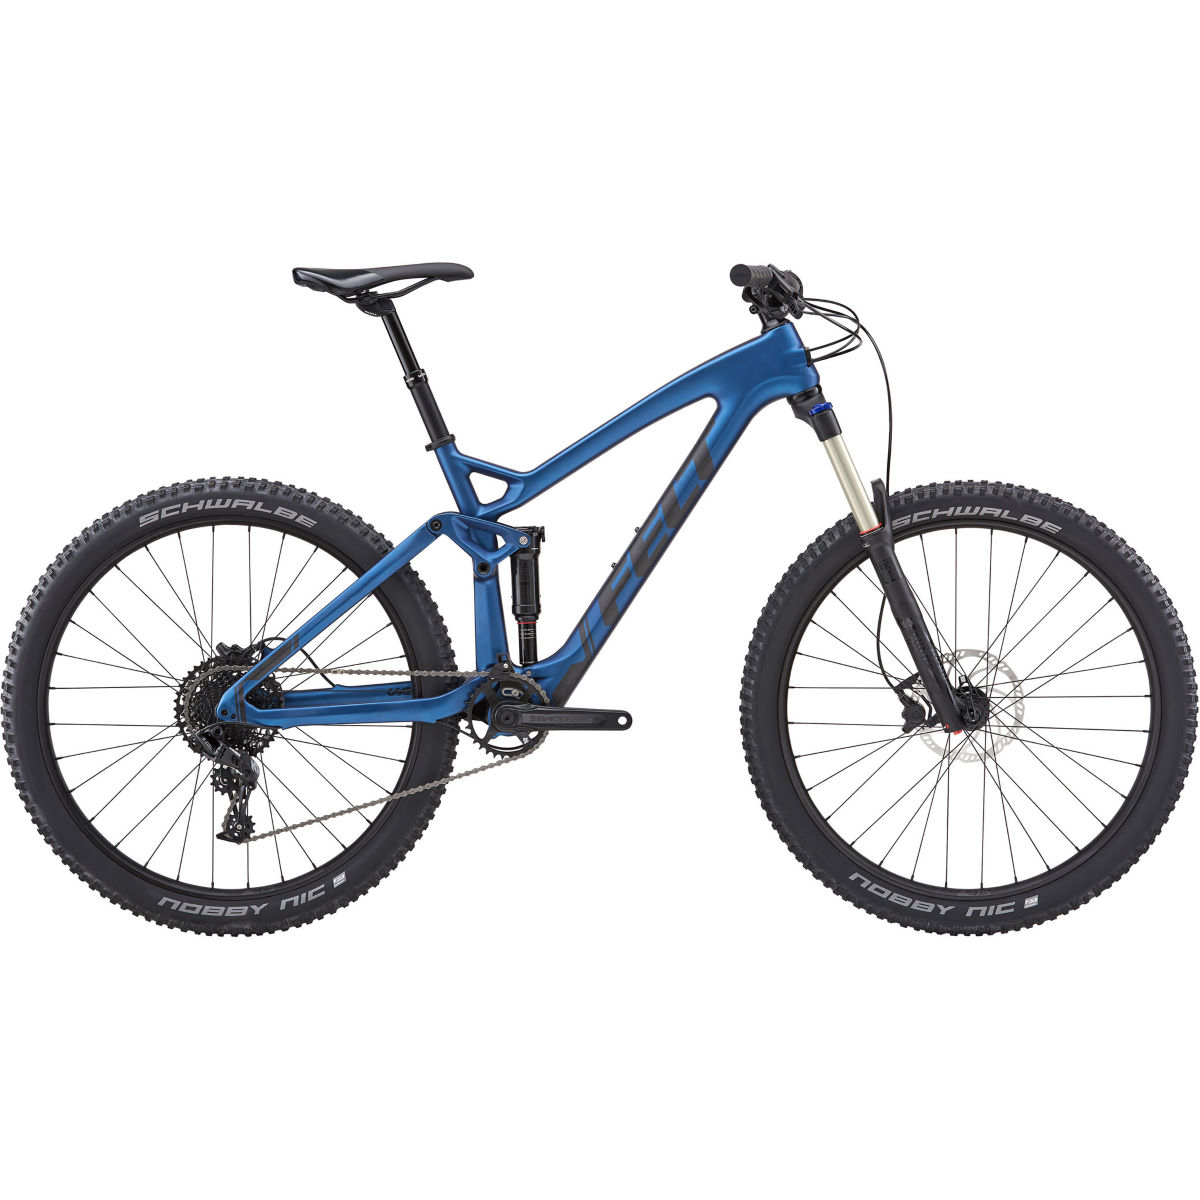 Felt Decree 5 (2018) Full Suspension MTB Bike - Bicicletas de MTB de doble suspensión